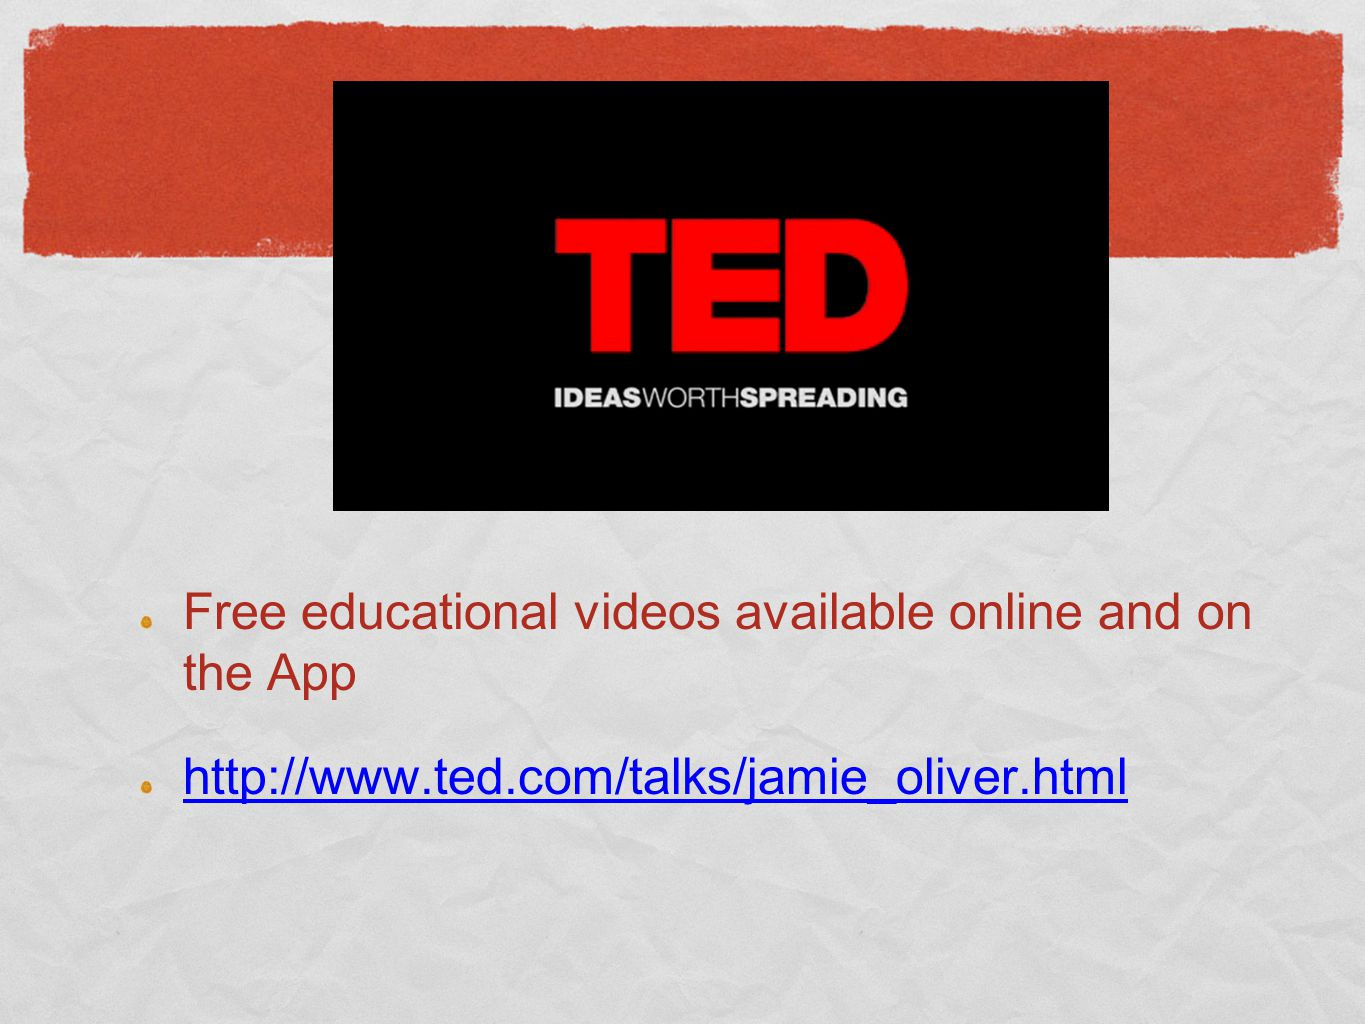 TED Free educational videos available online and on the App http://www.ted.com/talks/jamie_oliver.html